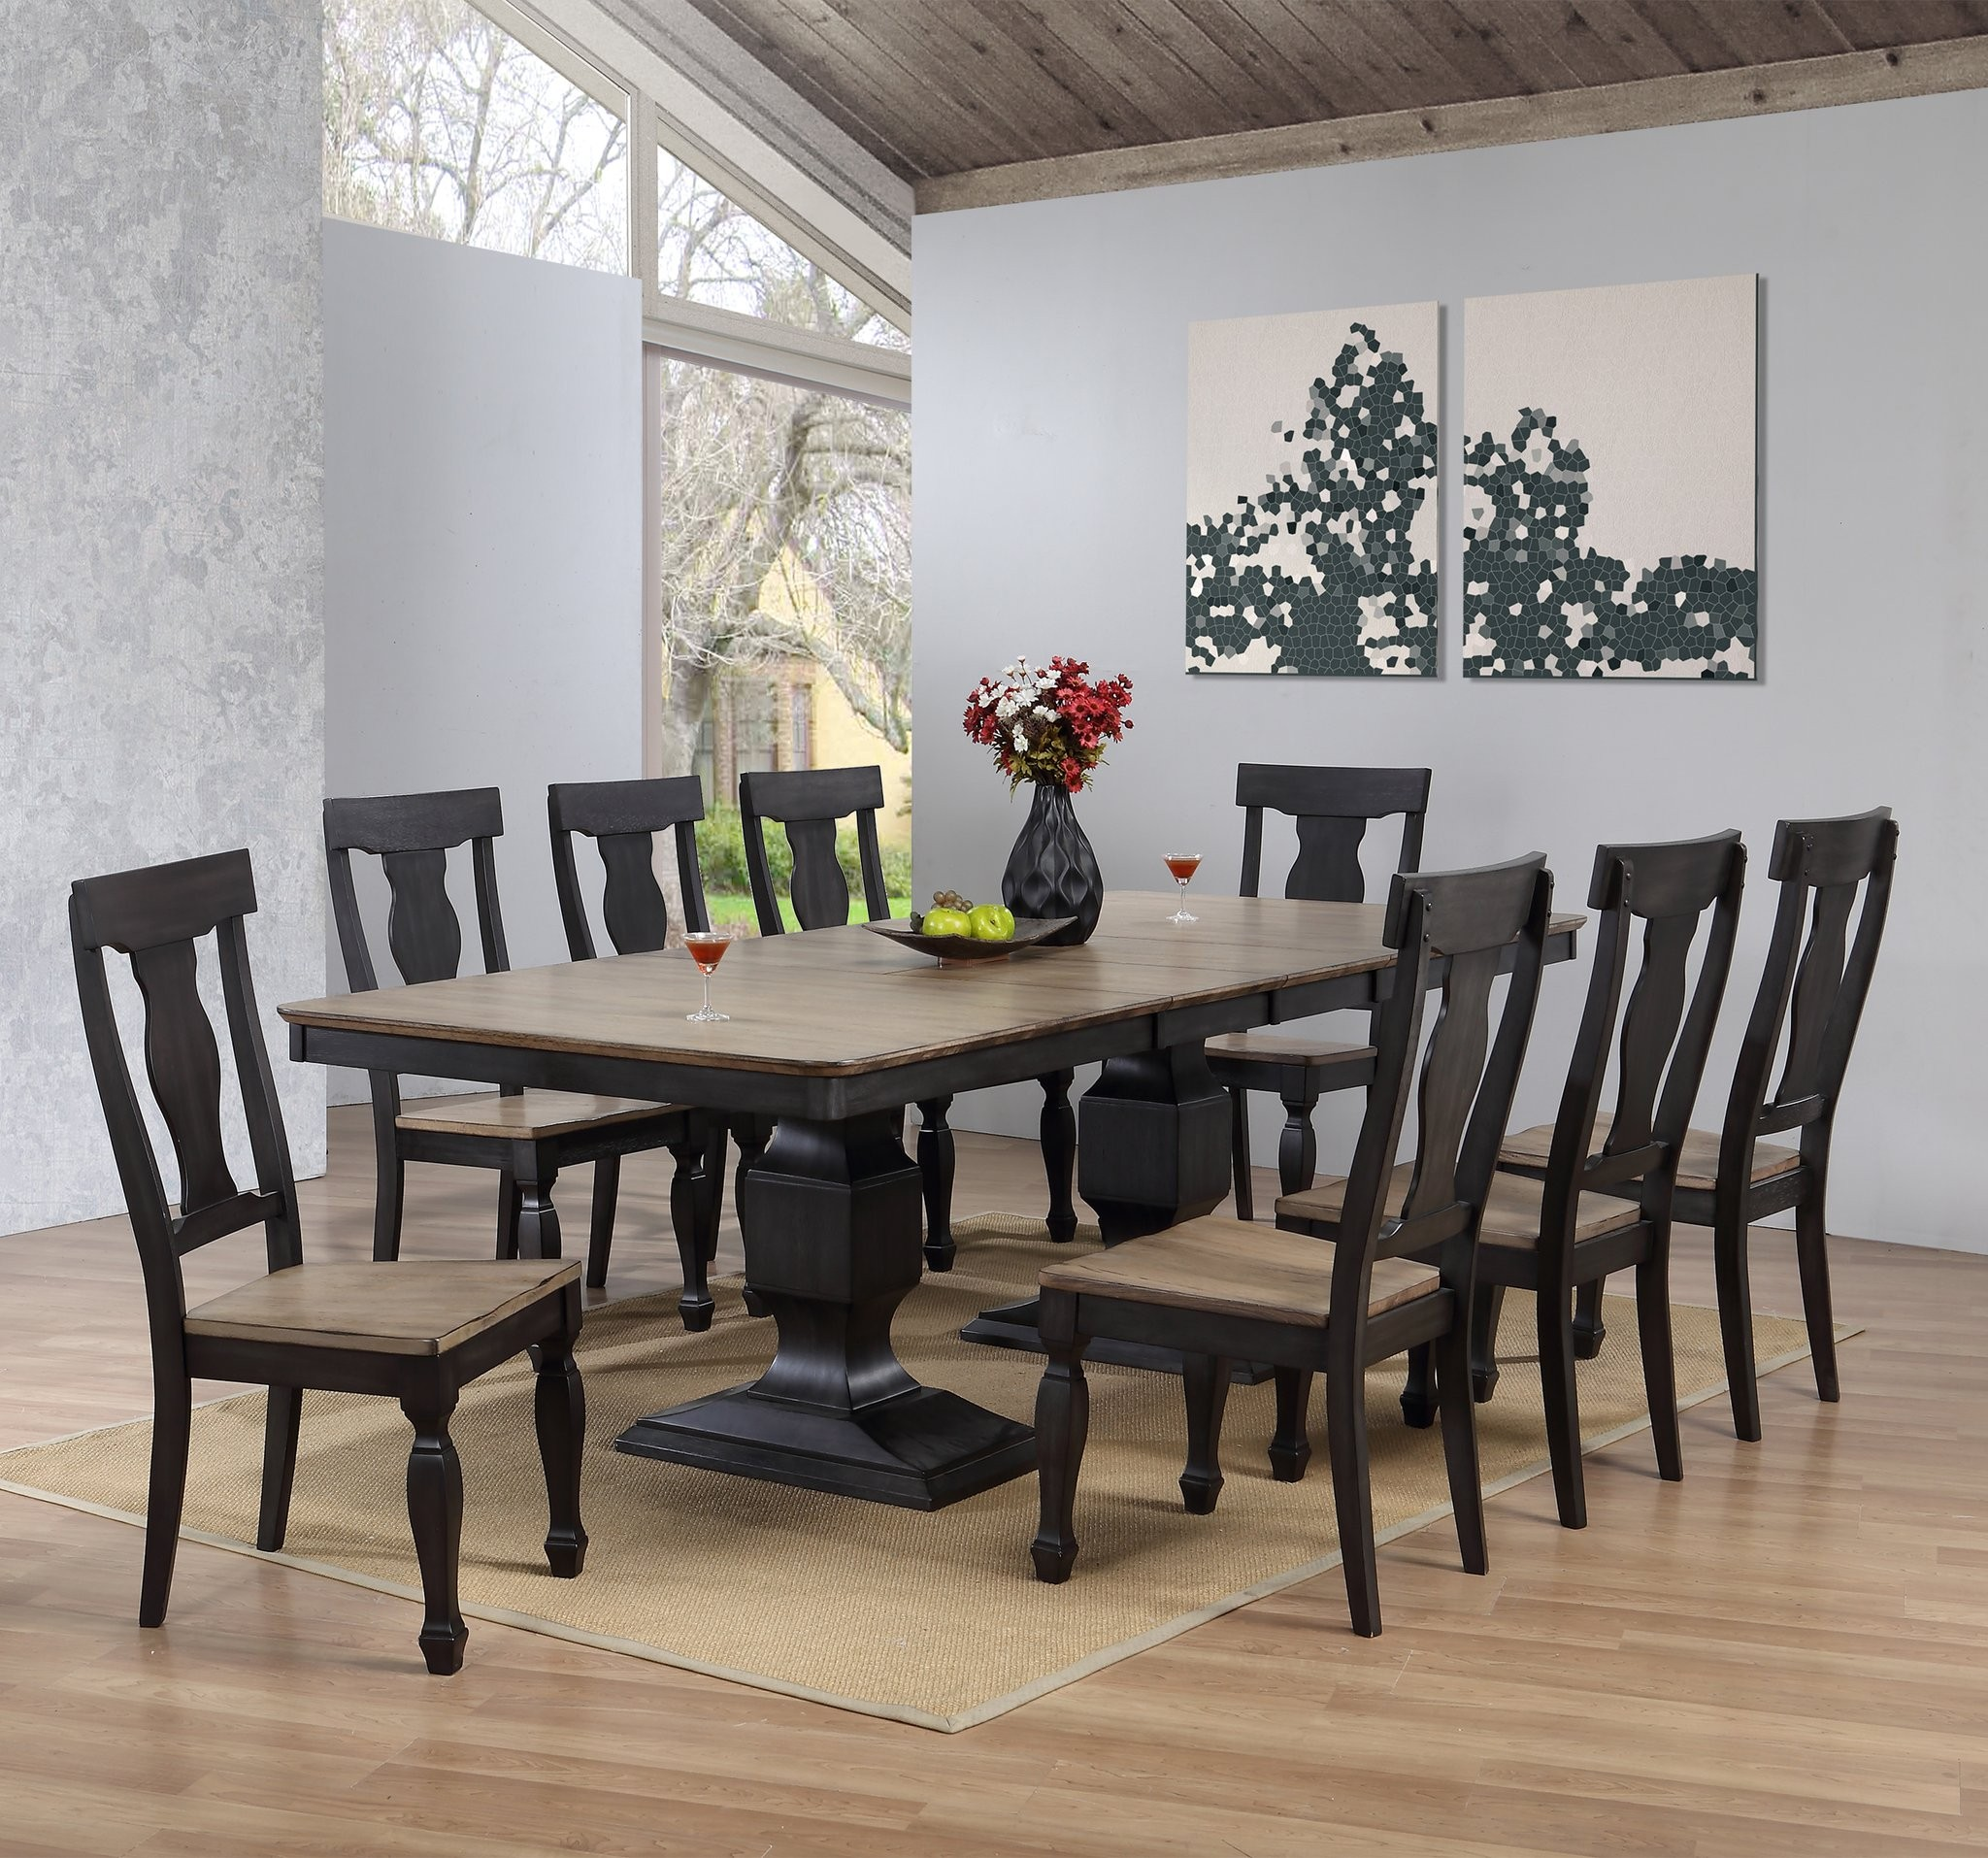 Round Dining Set With Leaf: Round Dining Table Set With Leaf Extension